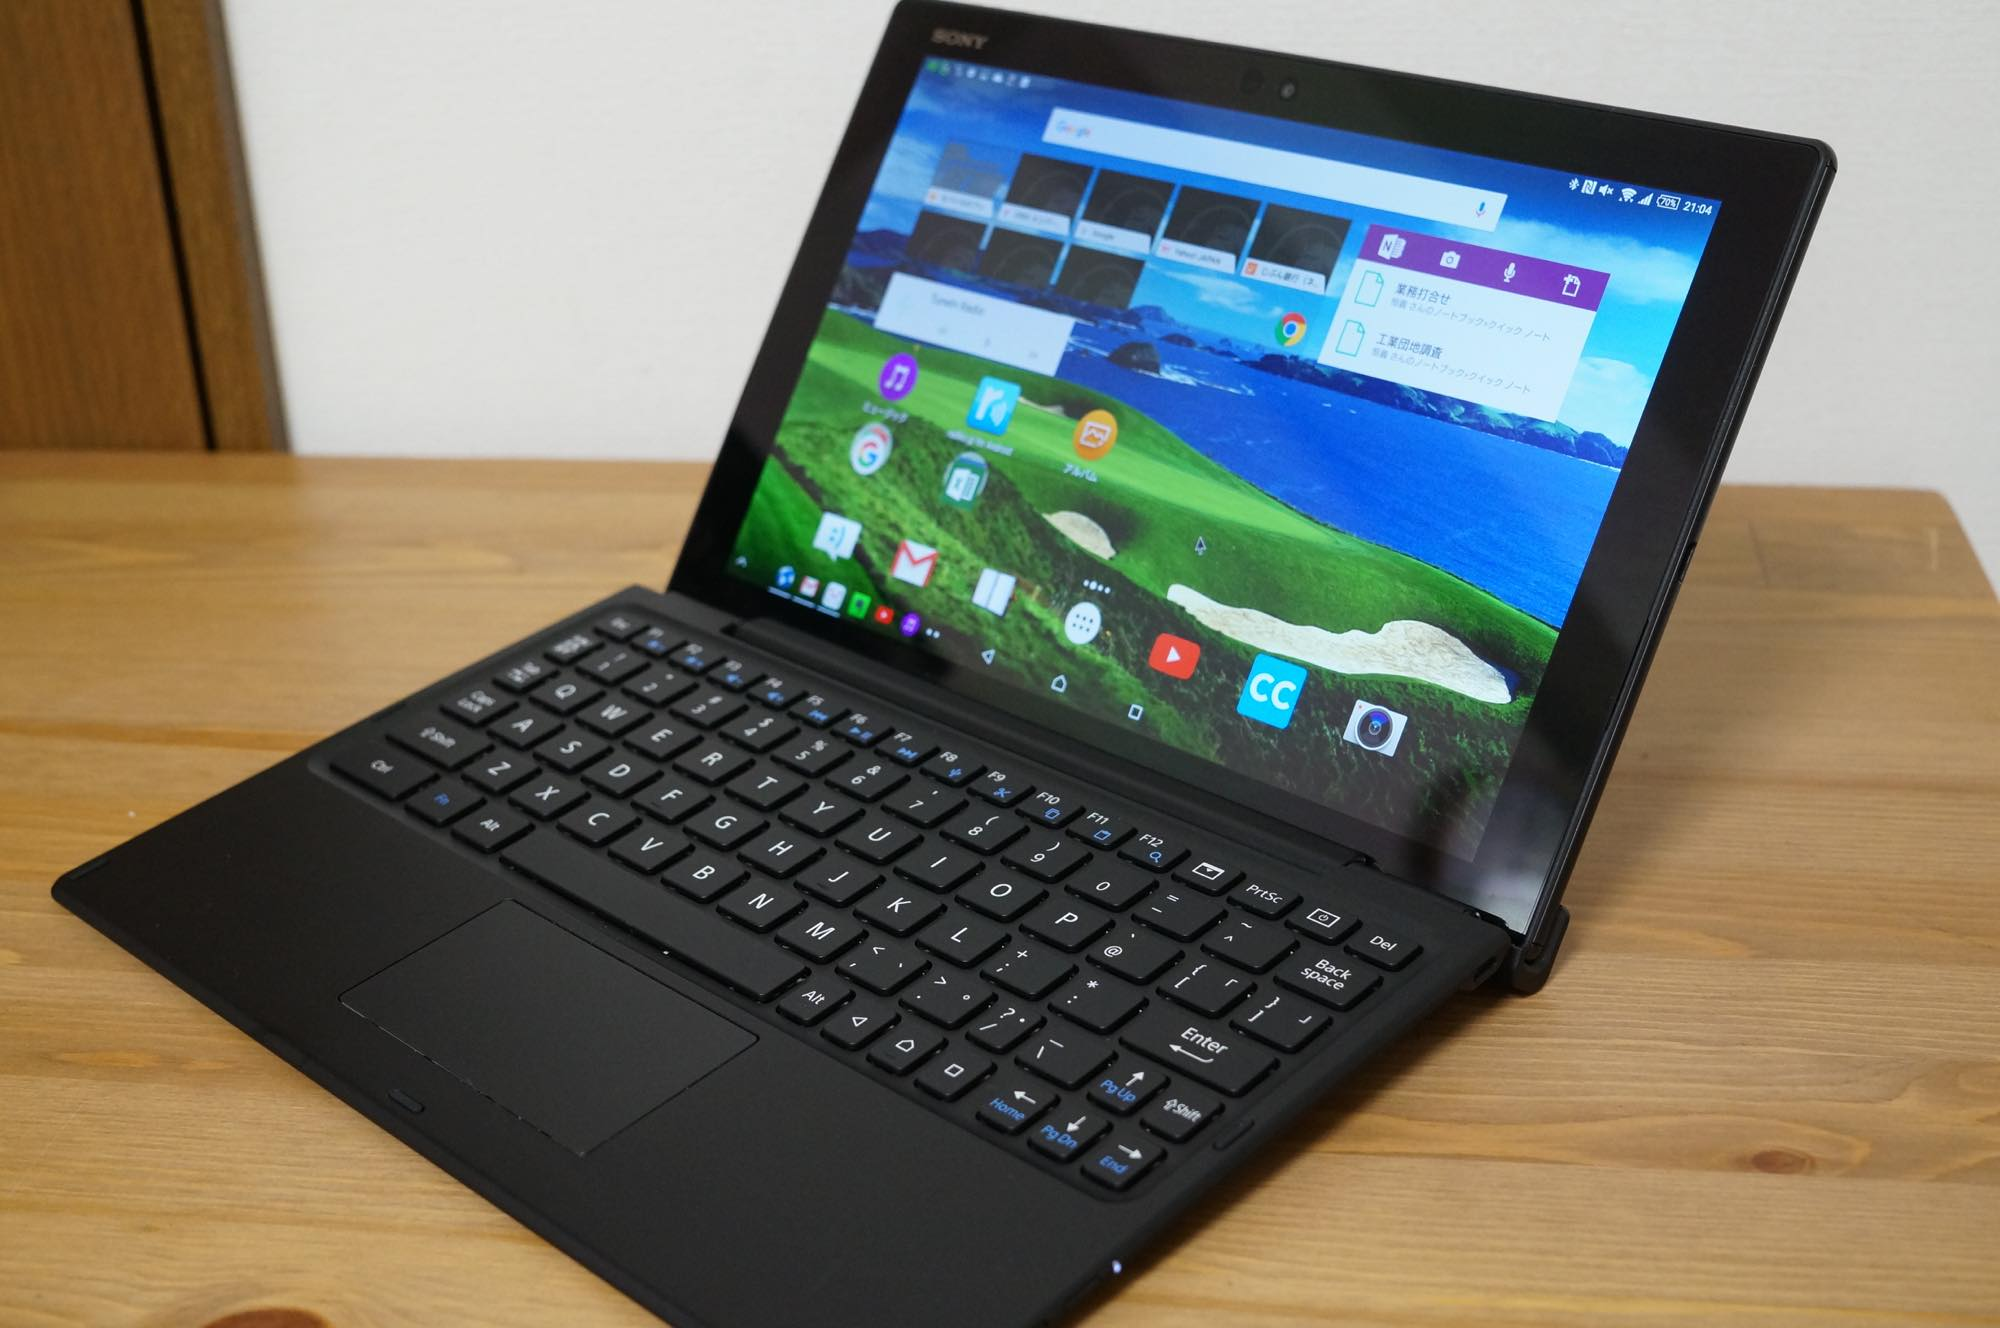 Xperia-Z4-tablet-keyboard10